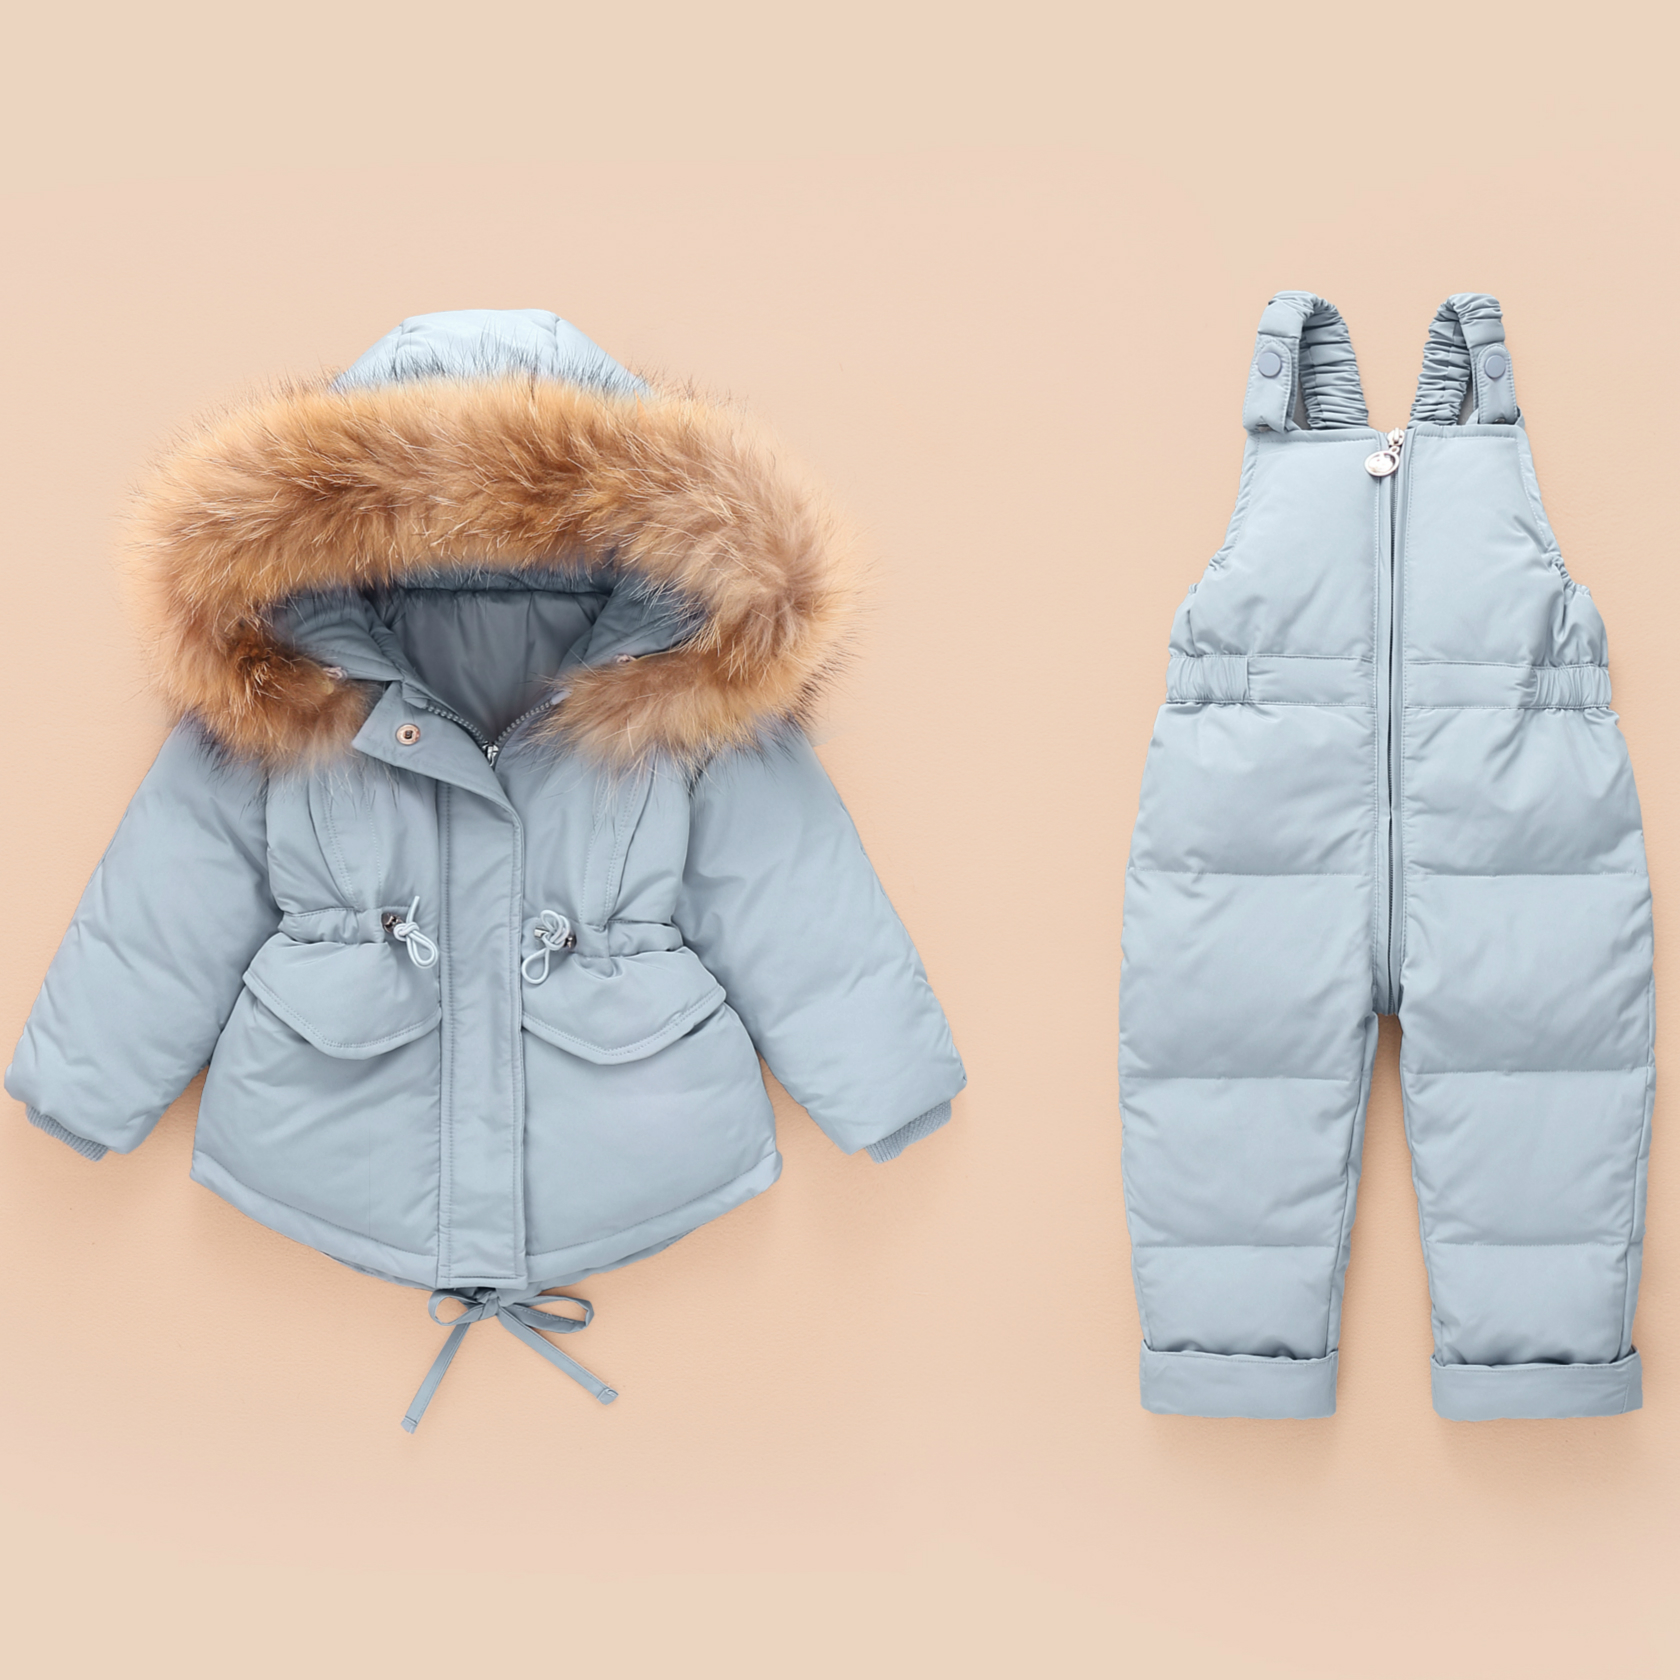 2019 Winter Jacket Kids Overalls For Girls Boys Kids Snowsuit Baby Boy Girl Coat Down Jackets Toddler New Year Clothing Set